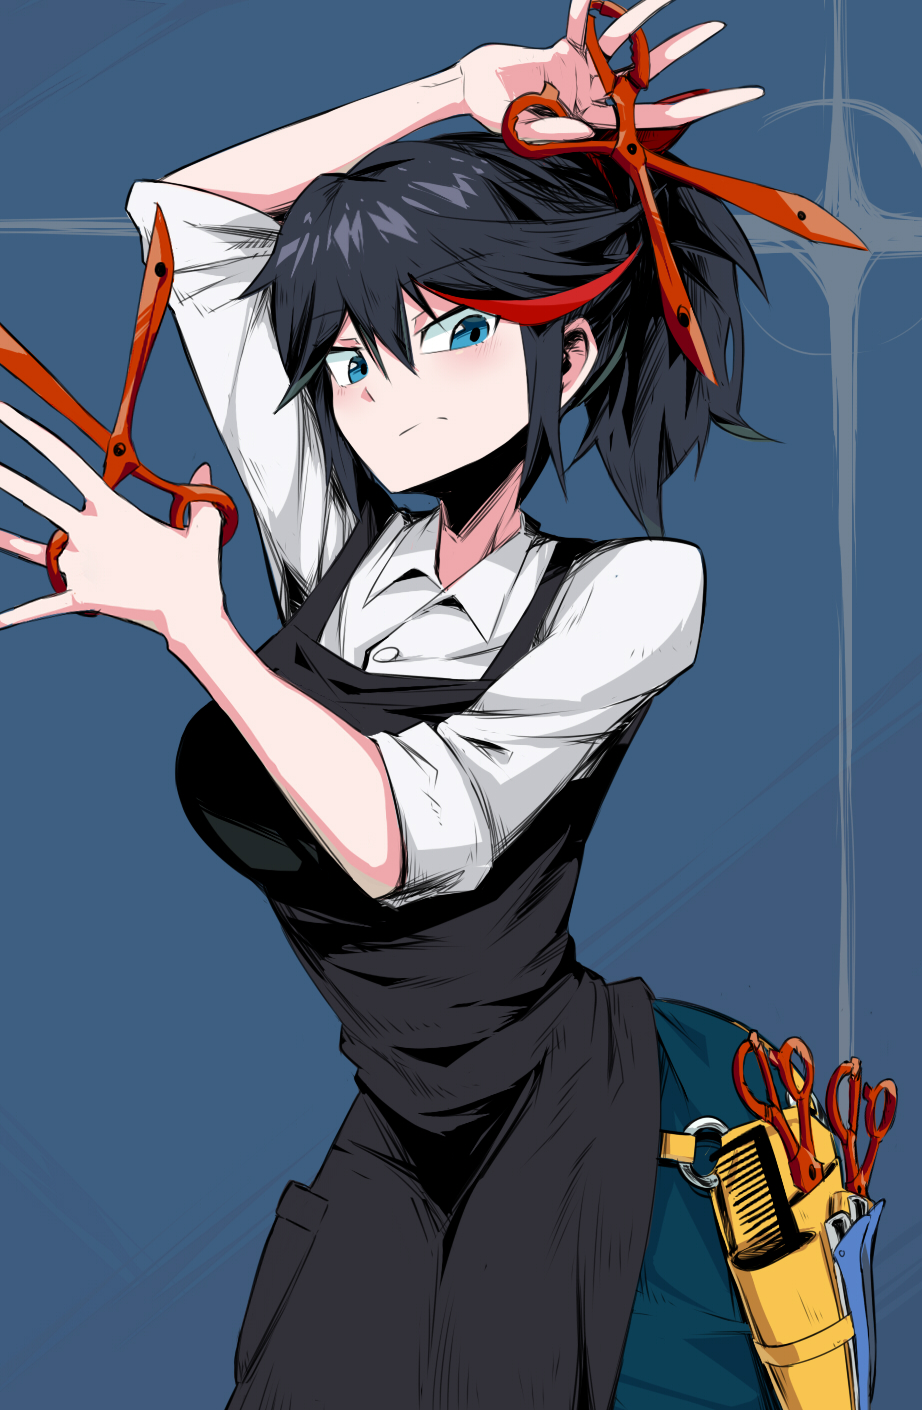 1girl alternate_hairstyle apron black_apron black_hair blue_eyes breasts dual_wielding hairdressing highres holding holster kill_la_kill large_breasts long_hair matoi_ryuuko multicolored_hair pants ponytail scissor_blade scissors shimure_(460) solo streaked_hair thigh_holster